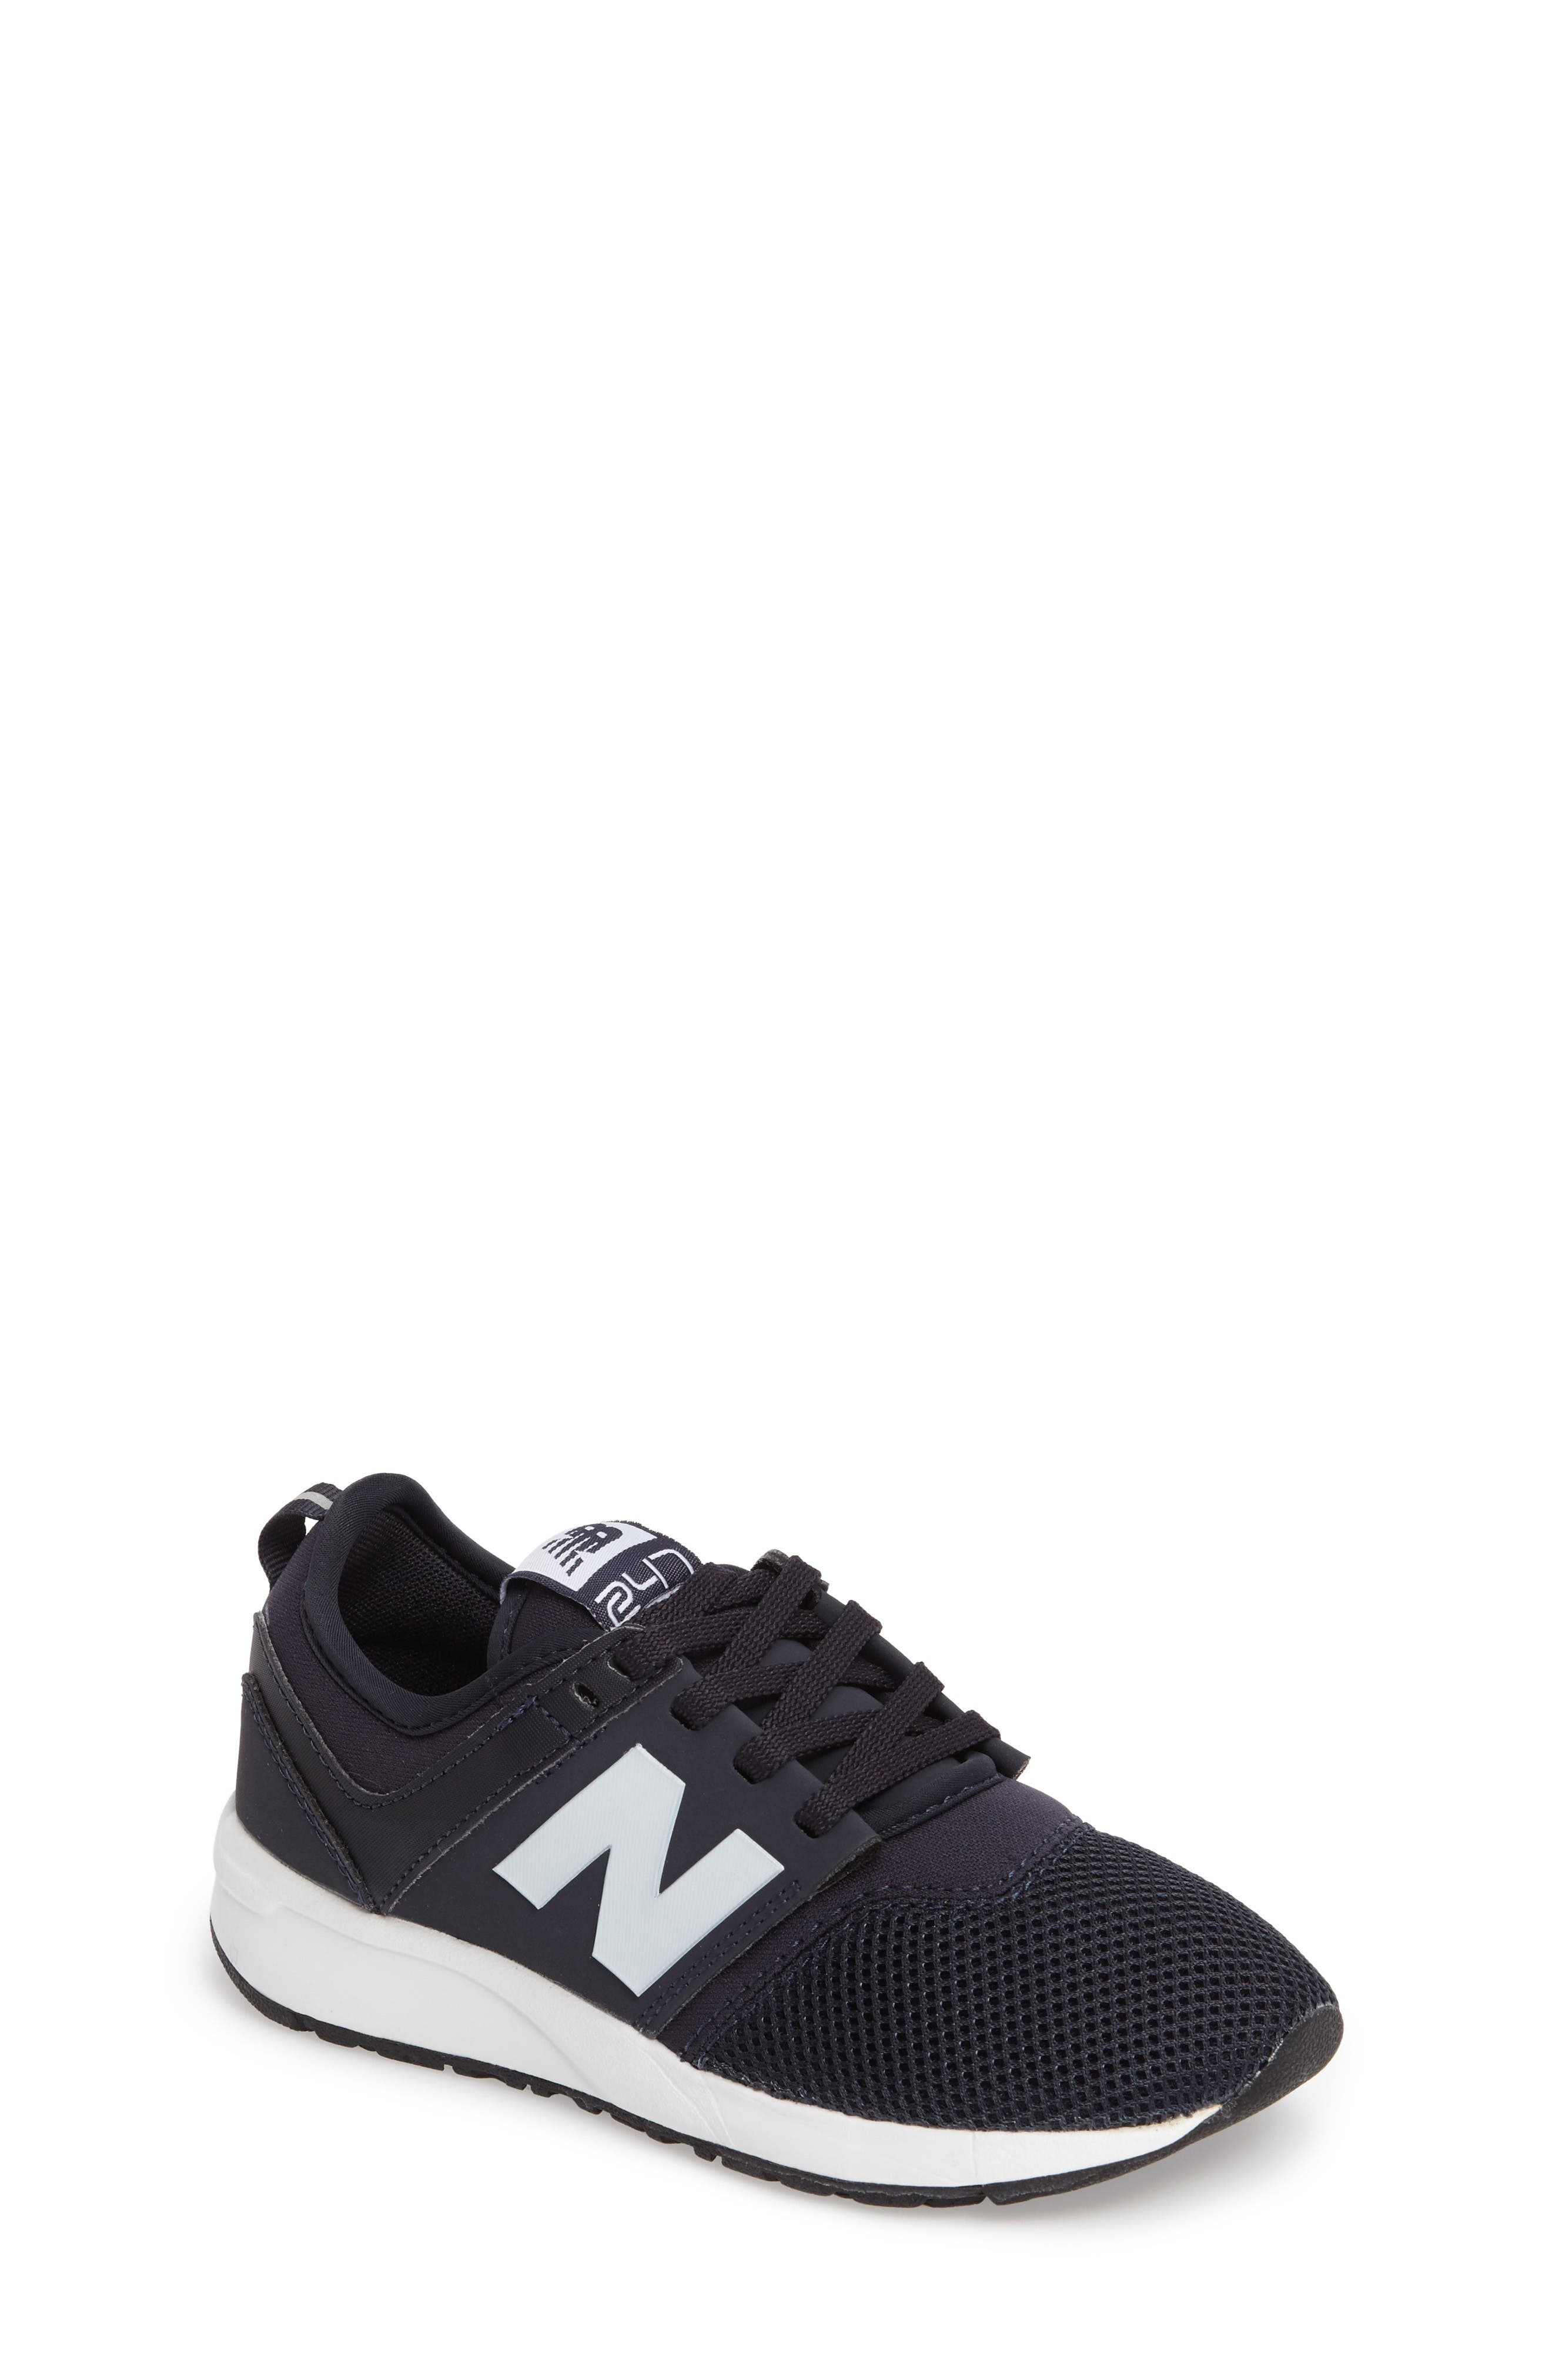 New Balance 247 Sport Sneaker (Baby, Walker, Toddler, Little Kid & Big Kid)